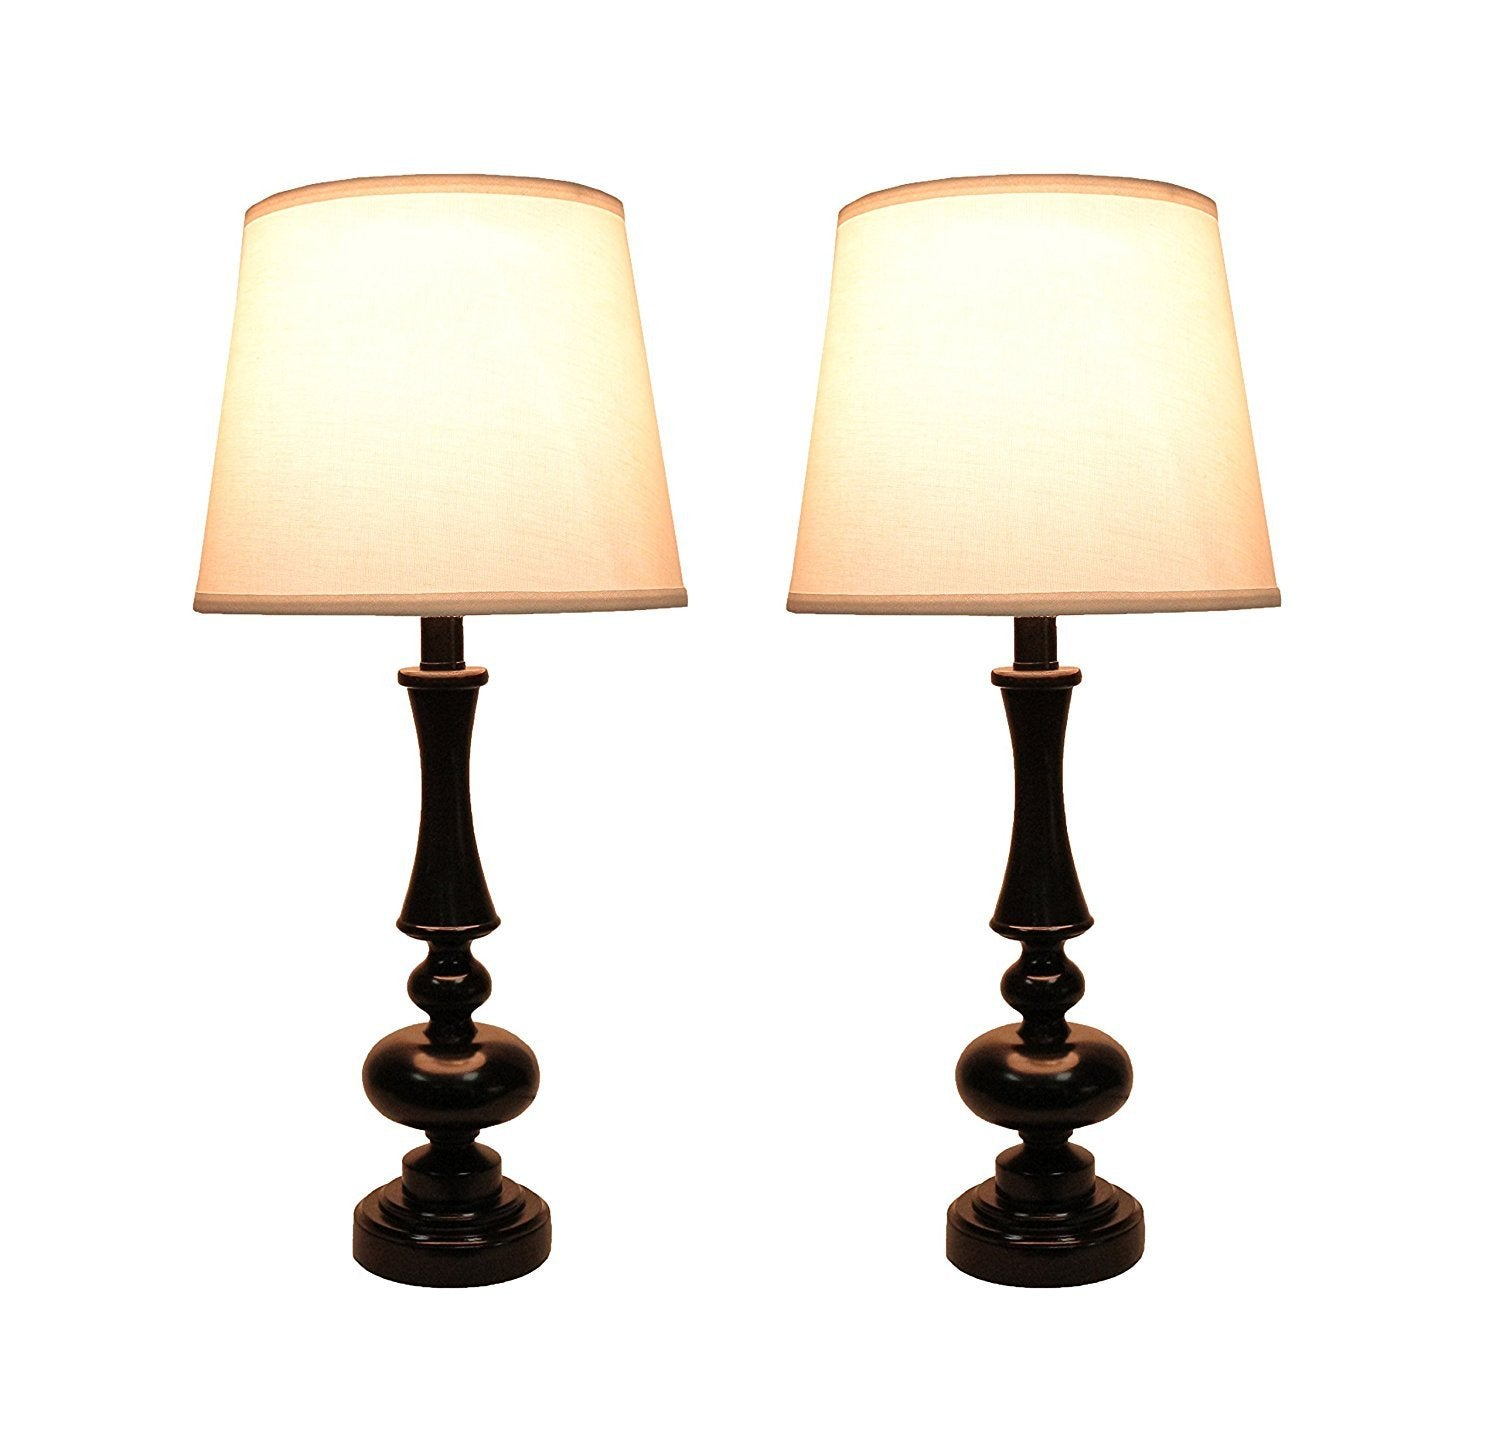 Set of 2 Nouvel Table Lamps